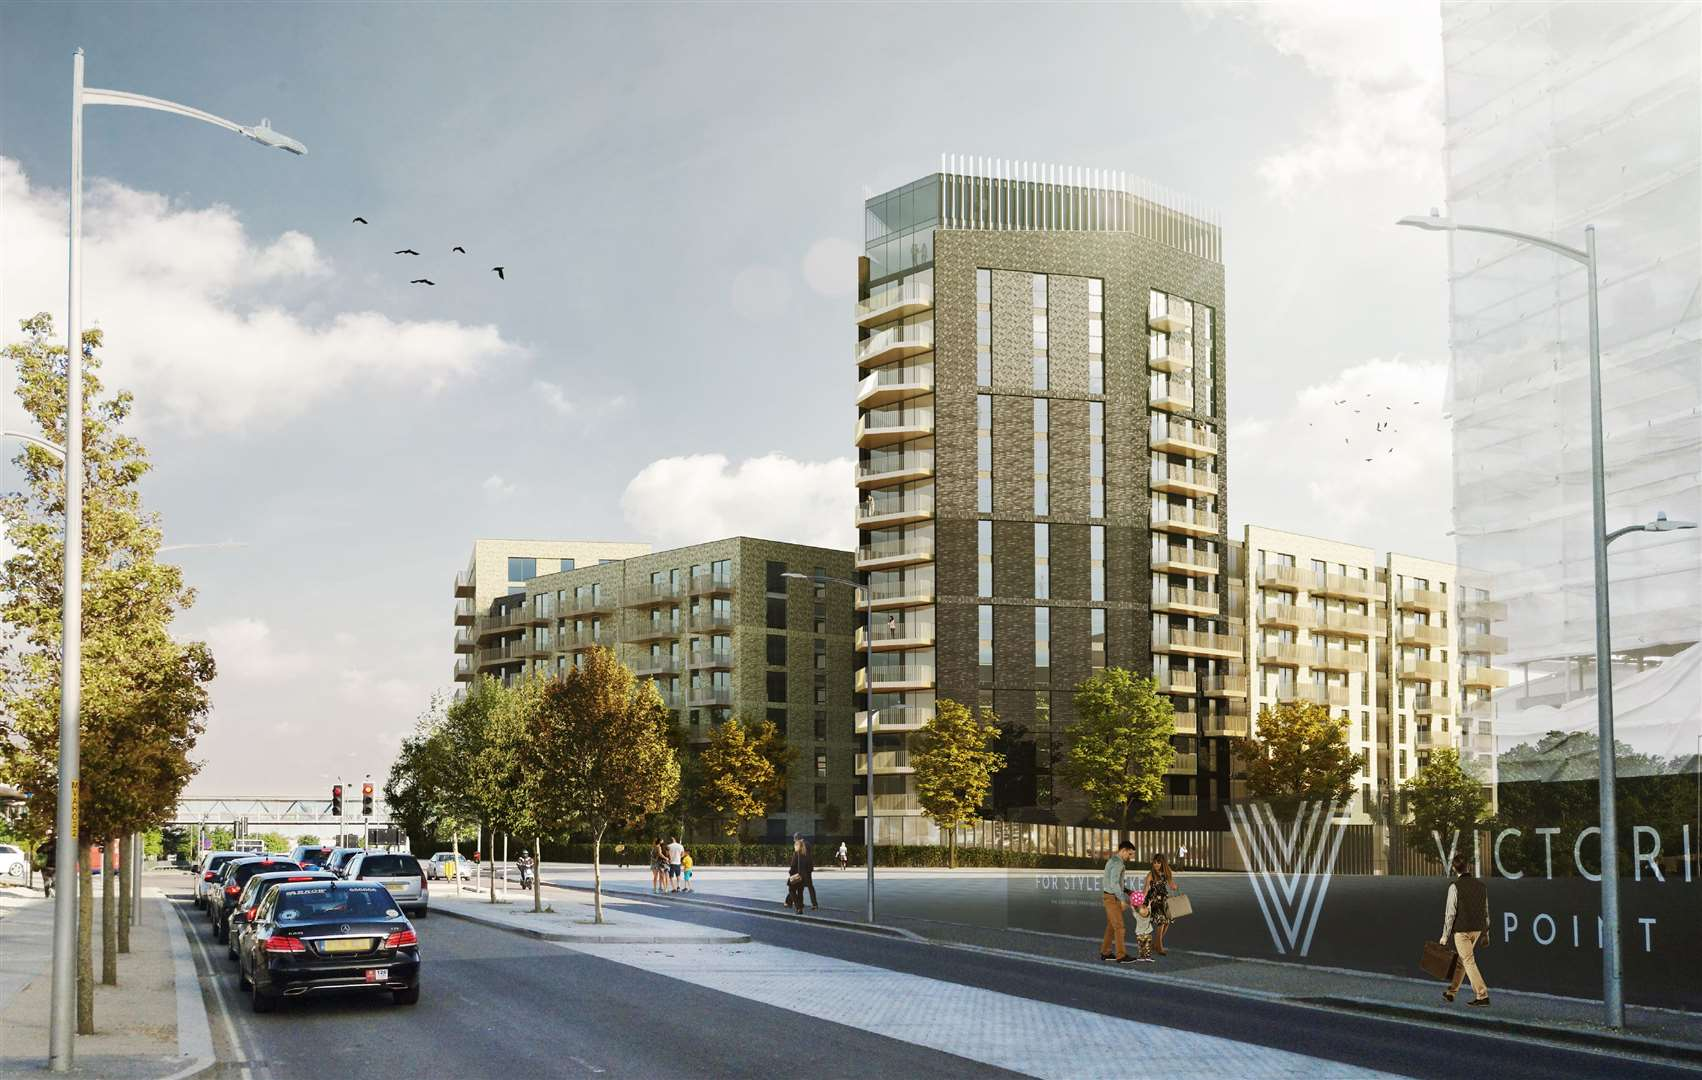 The 'Ashford Shard' tower block will go over 16 storeys - this view shows it from Victoria Road